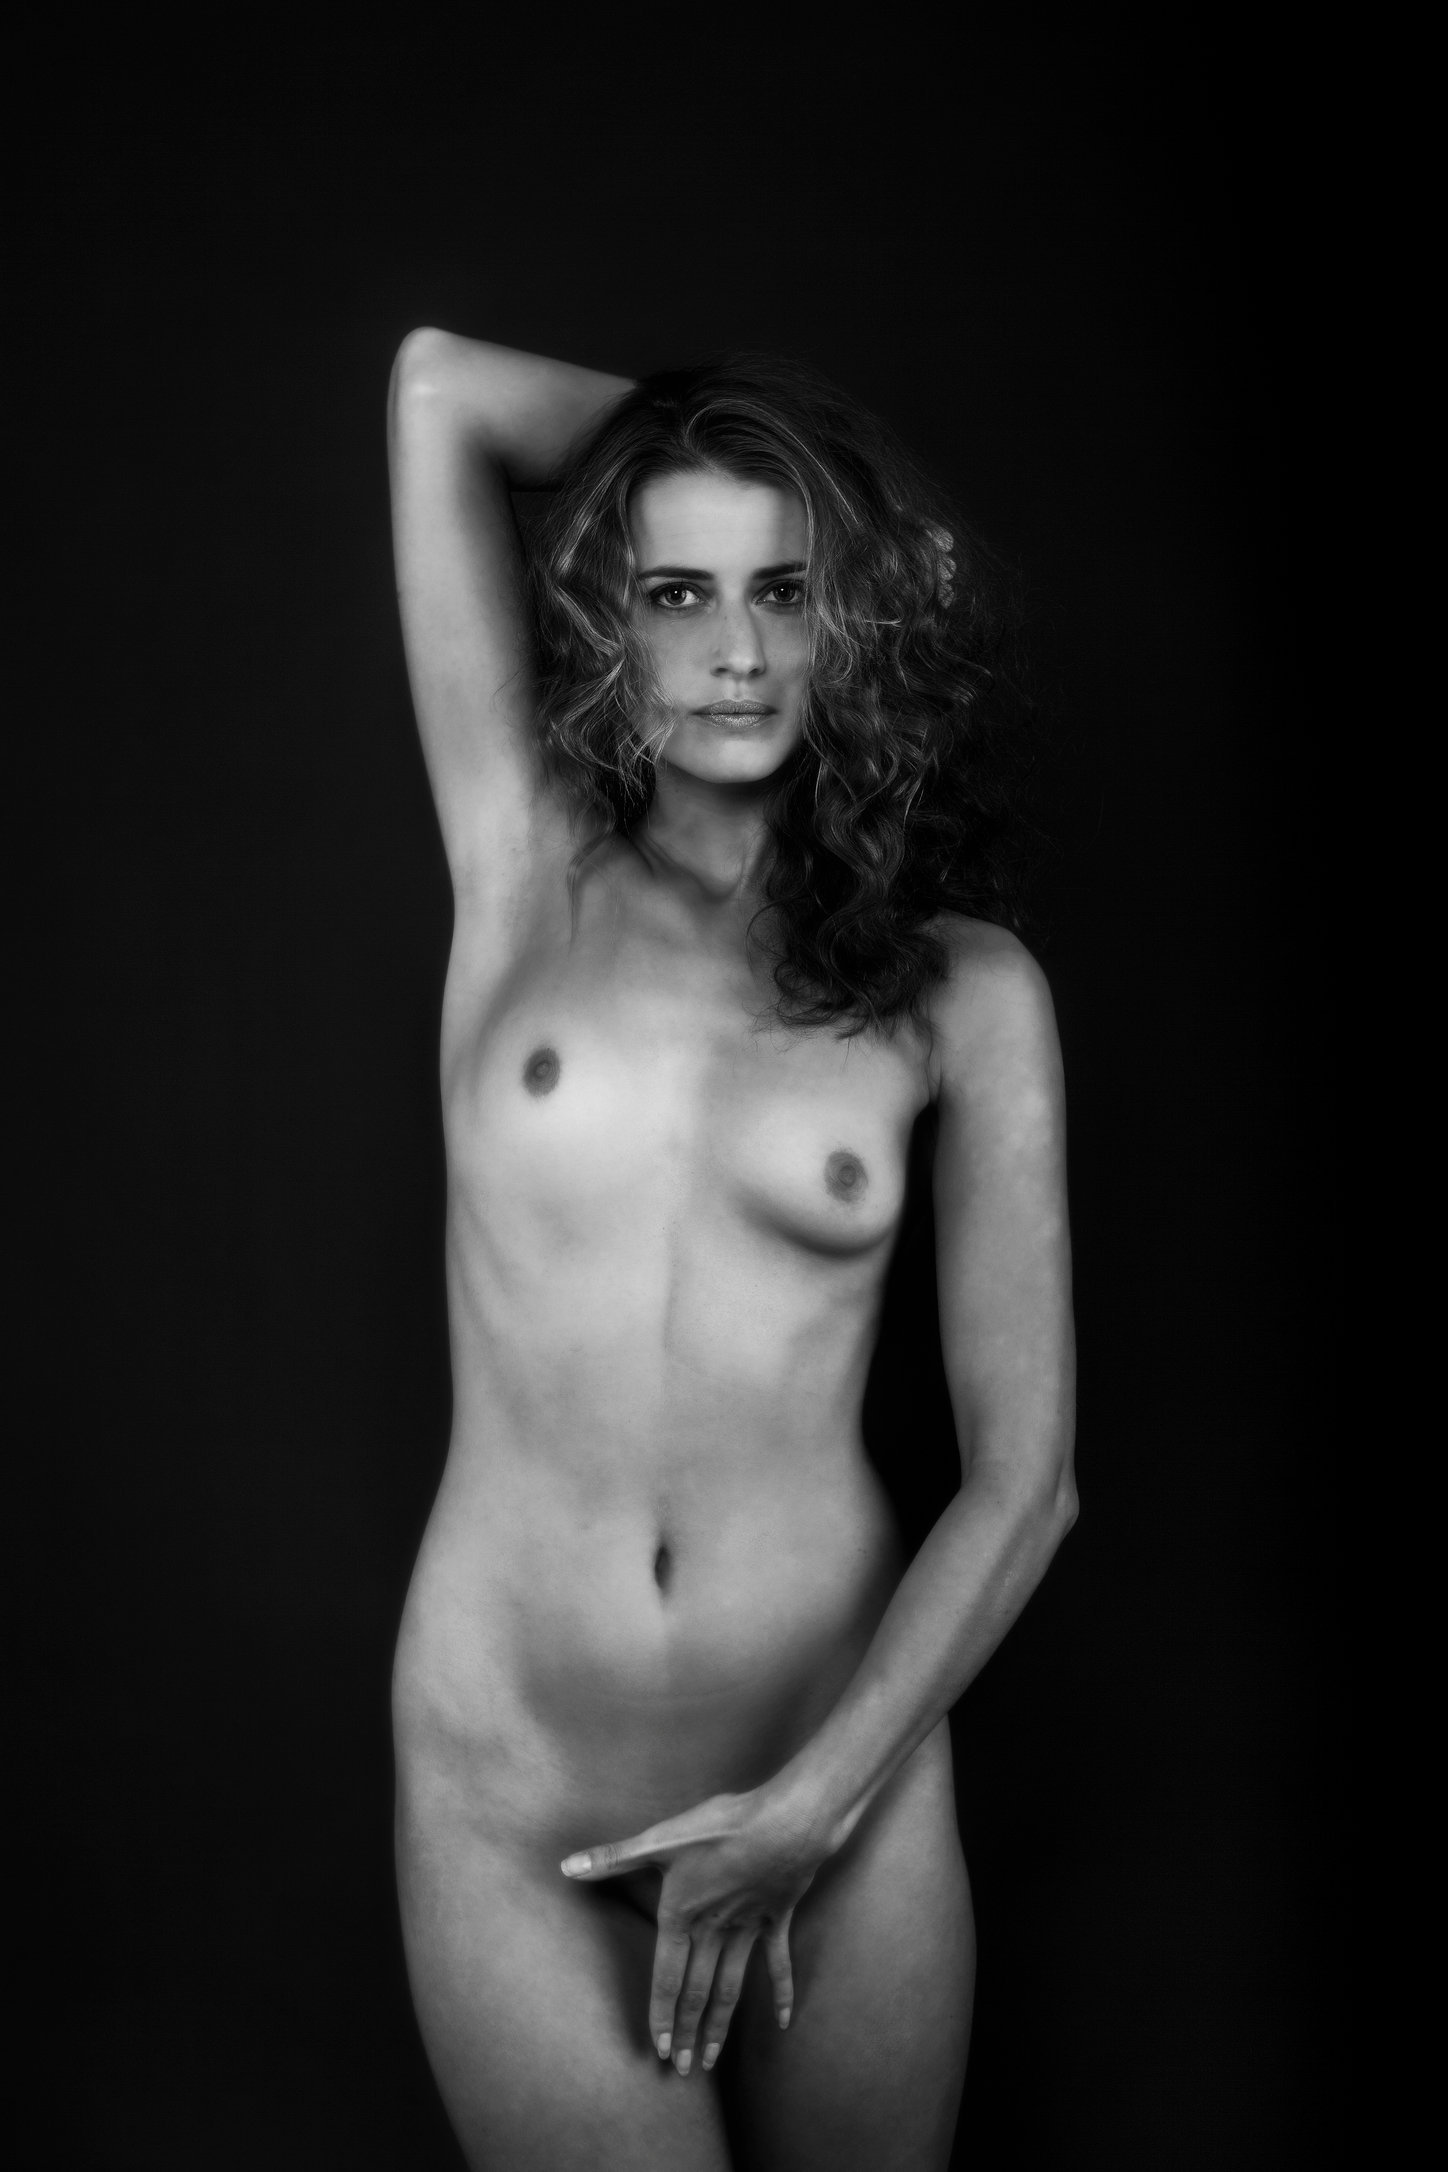 Naked Photoshoot